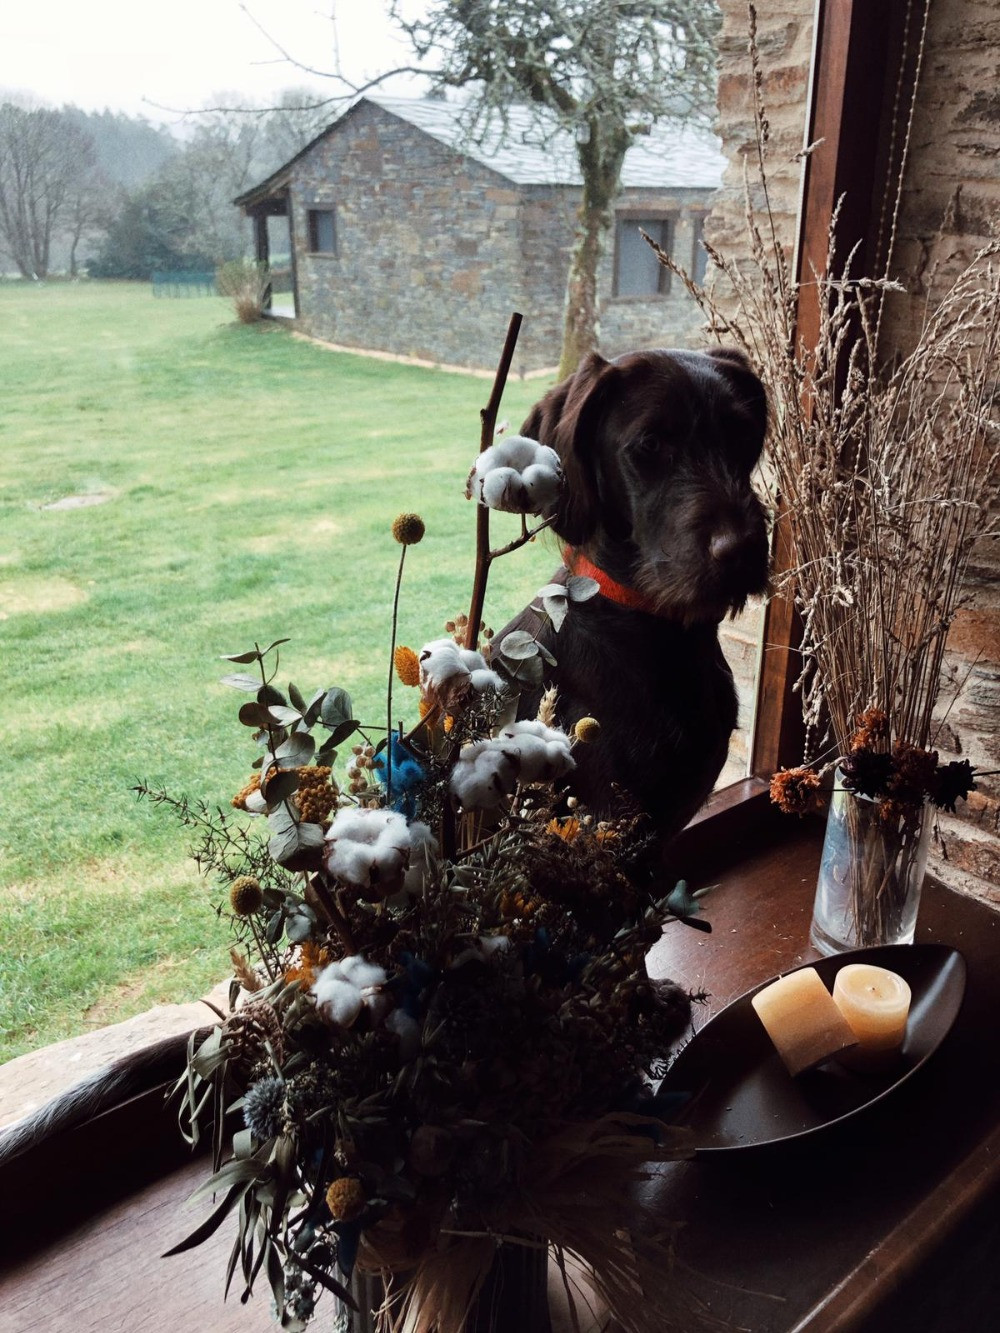 Casa rural pet friendly en Galicia